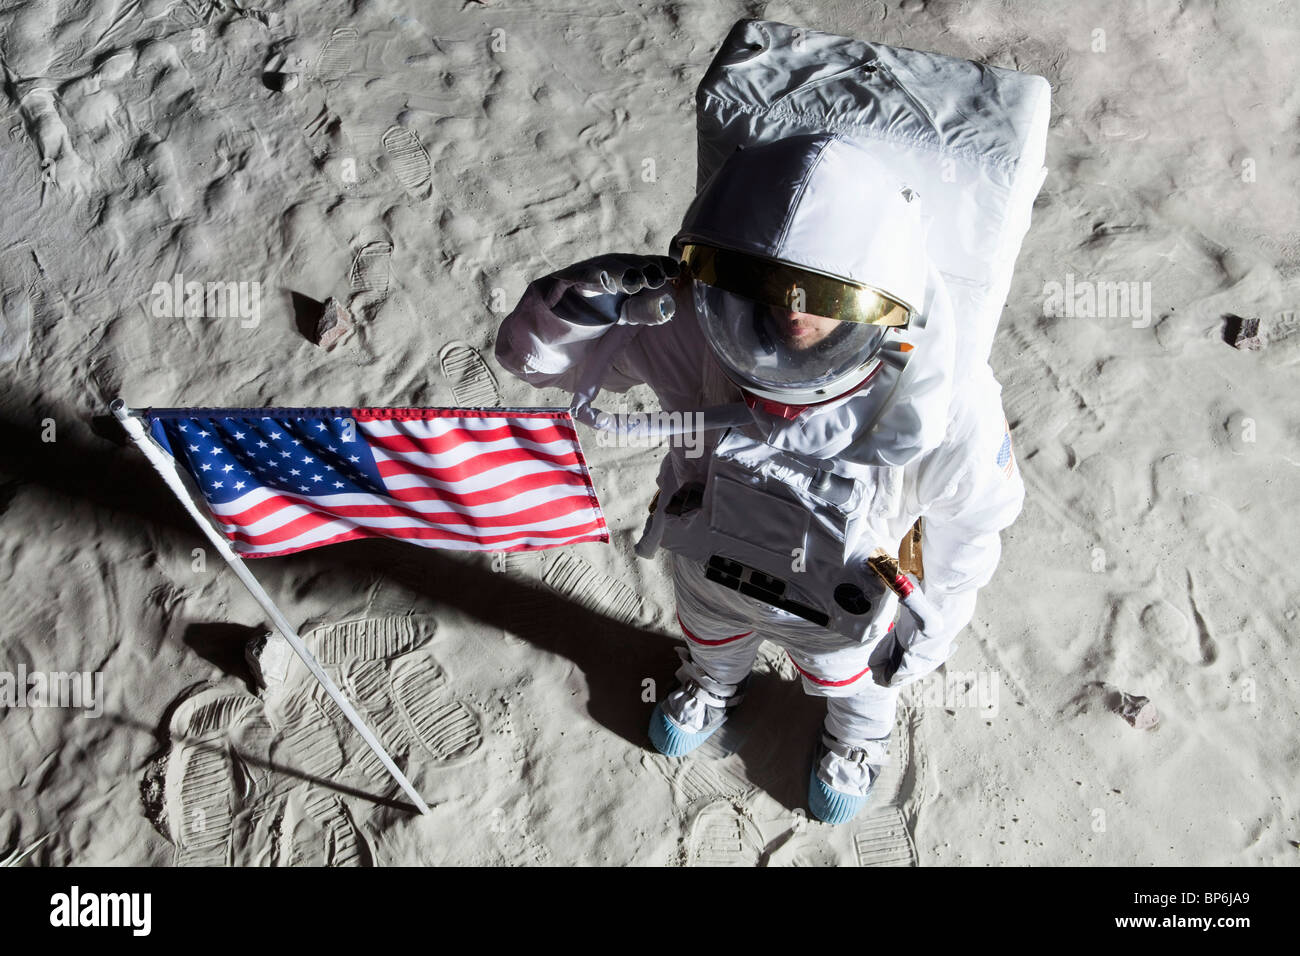 An astronaut on the surface of the moon saluting an American flag - Stock Image